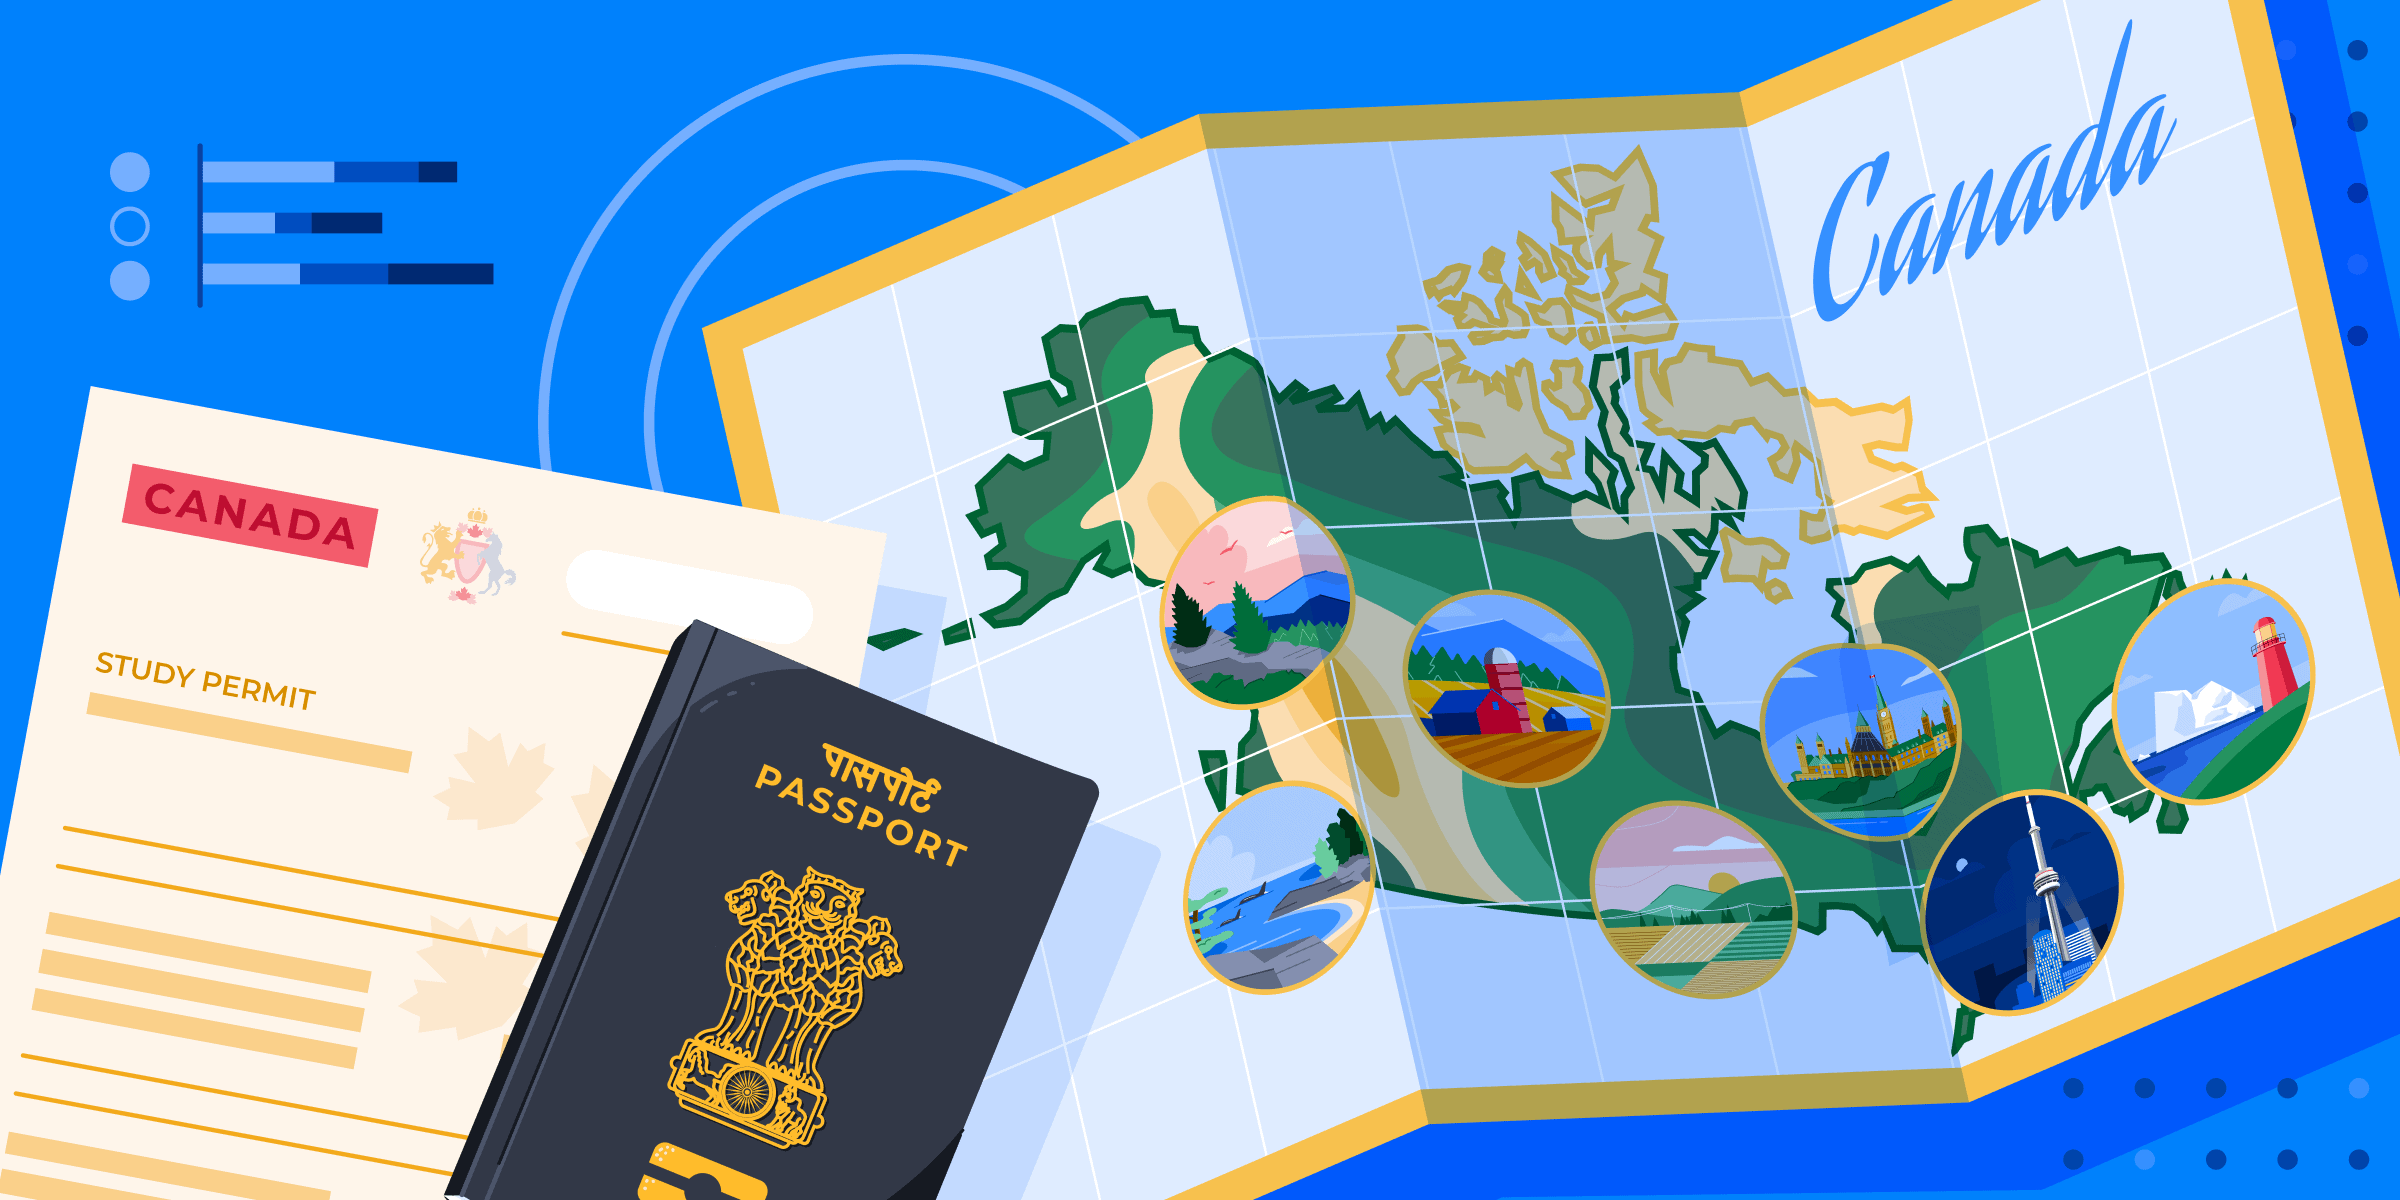 A map of Canada with inset pictures showing scenery from across the country, alongside an Indian passport and a Canadian study permit.